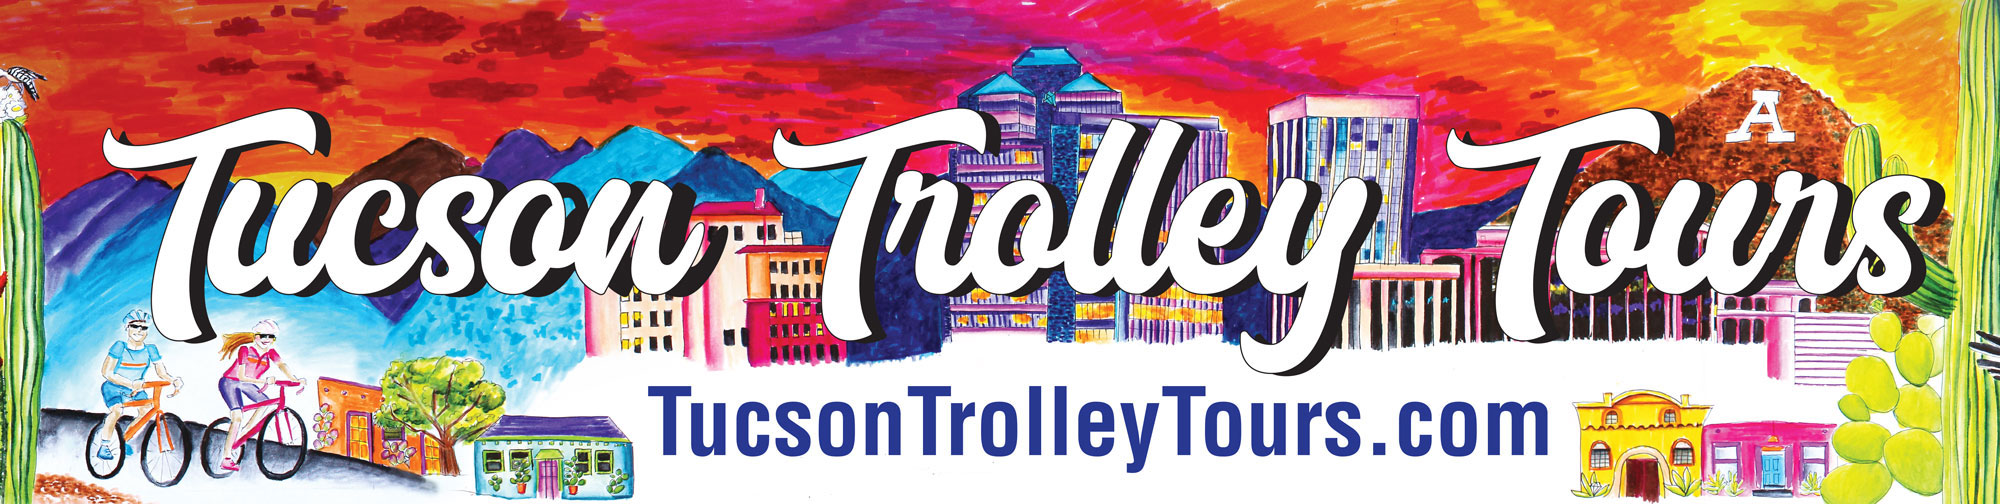 Tucson Trolley Tours